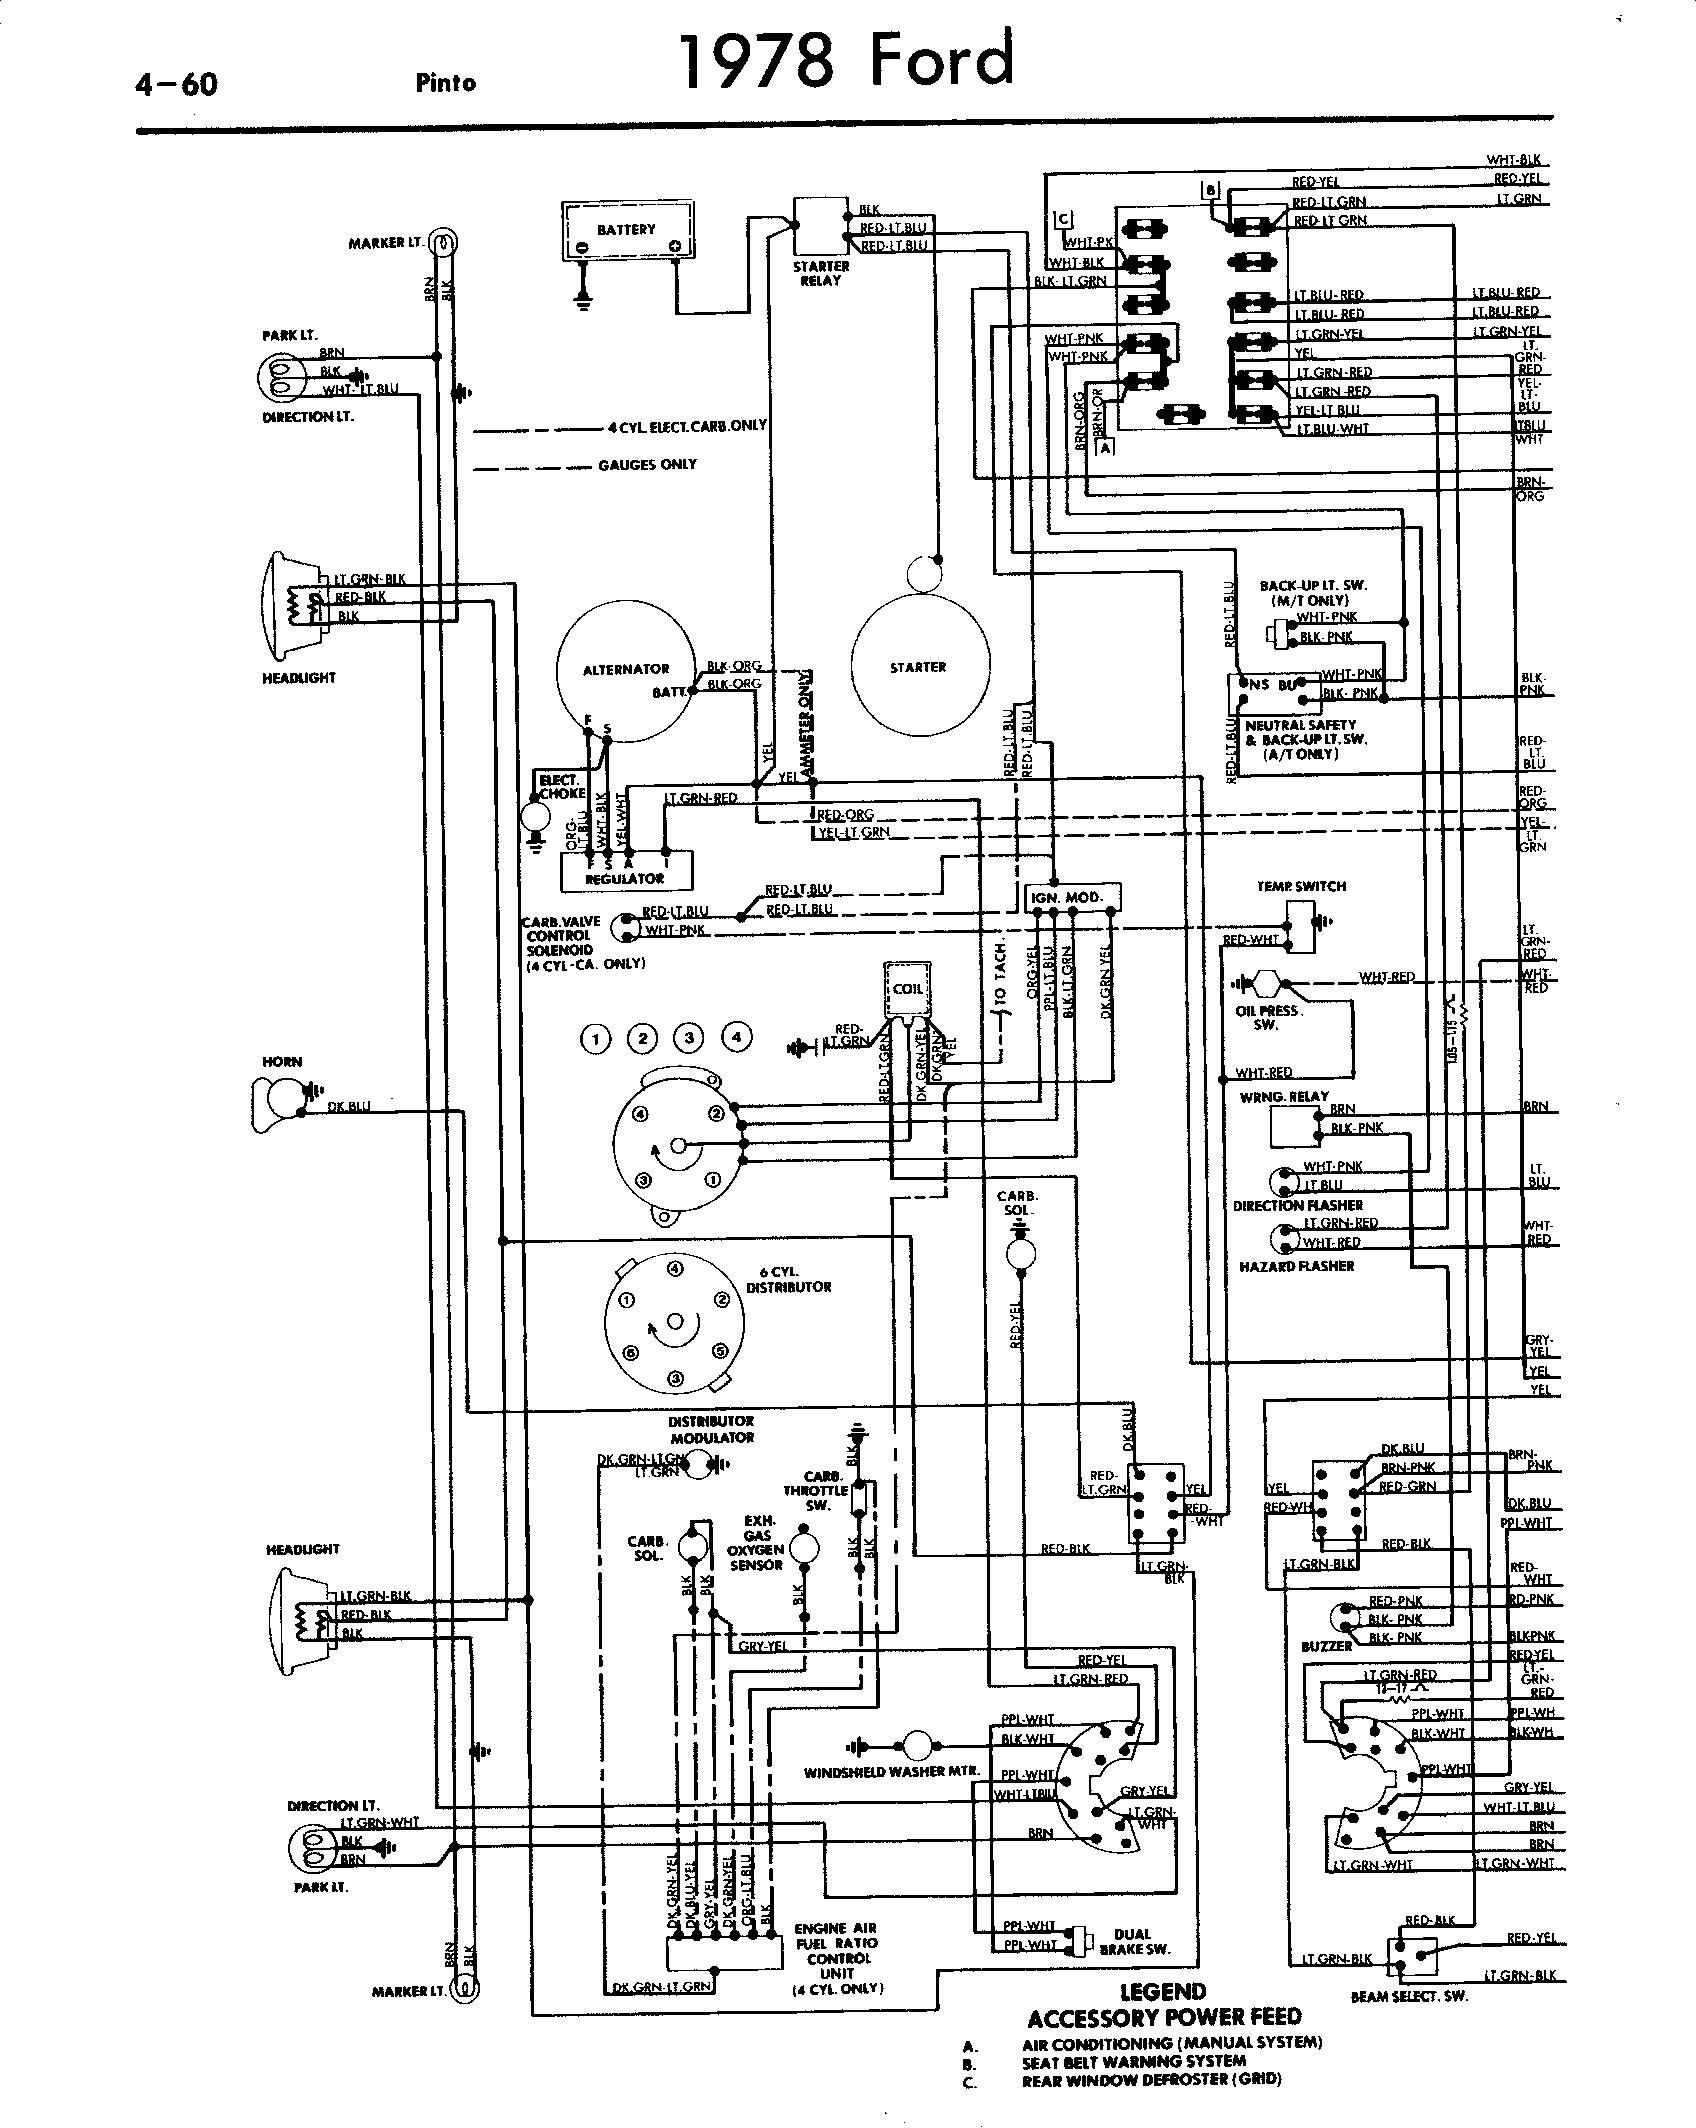 2001 Ford 5 4 Engine Diagram 77 F250 Wiring Info 01 7 3 Wire Of